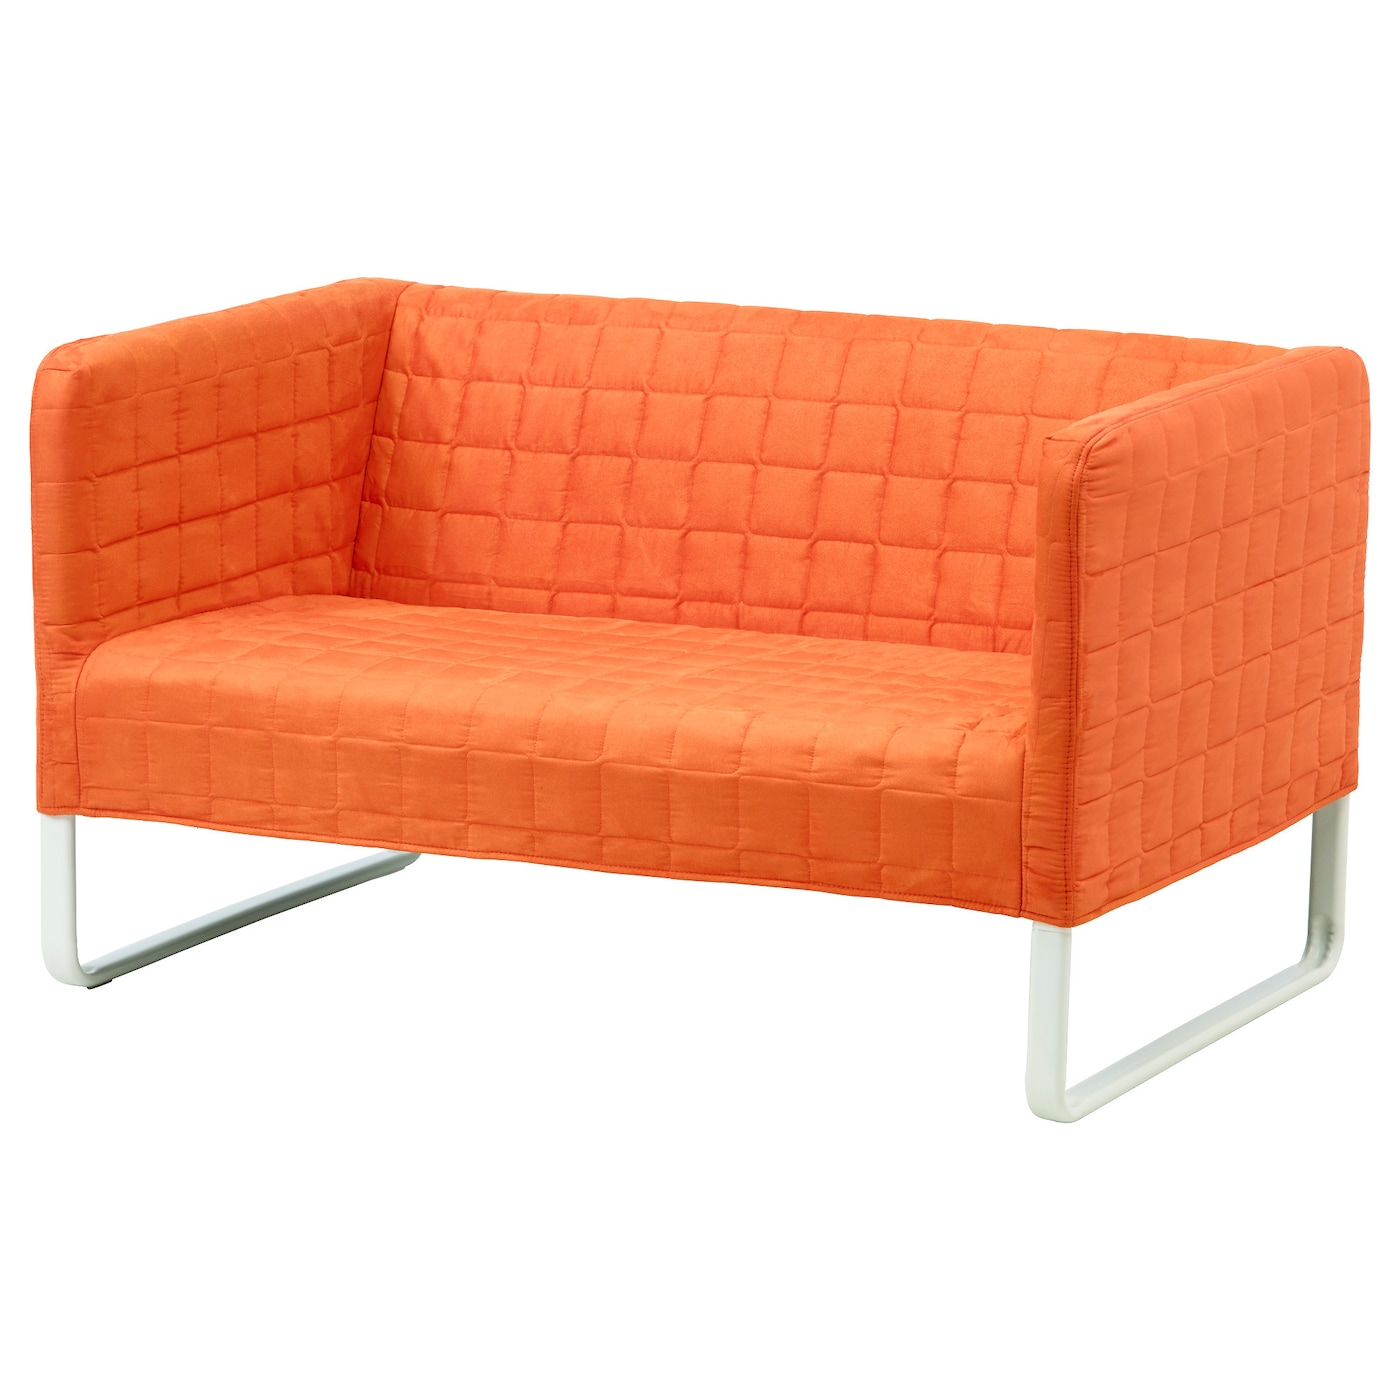 Knopparp 2 seat sofa orange ikea - Fauteuil orange ikea ...